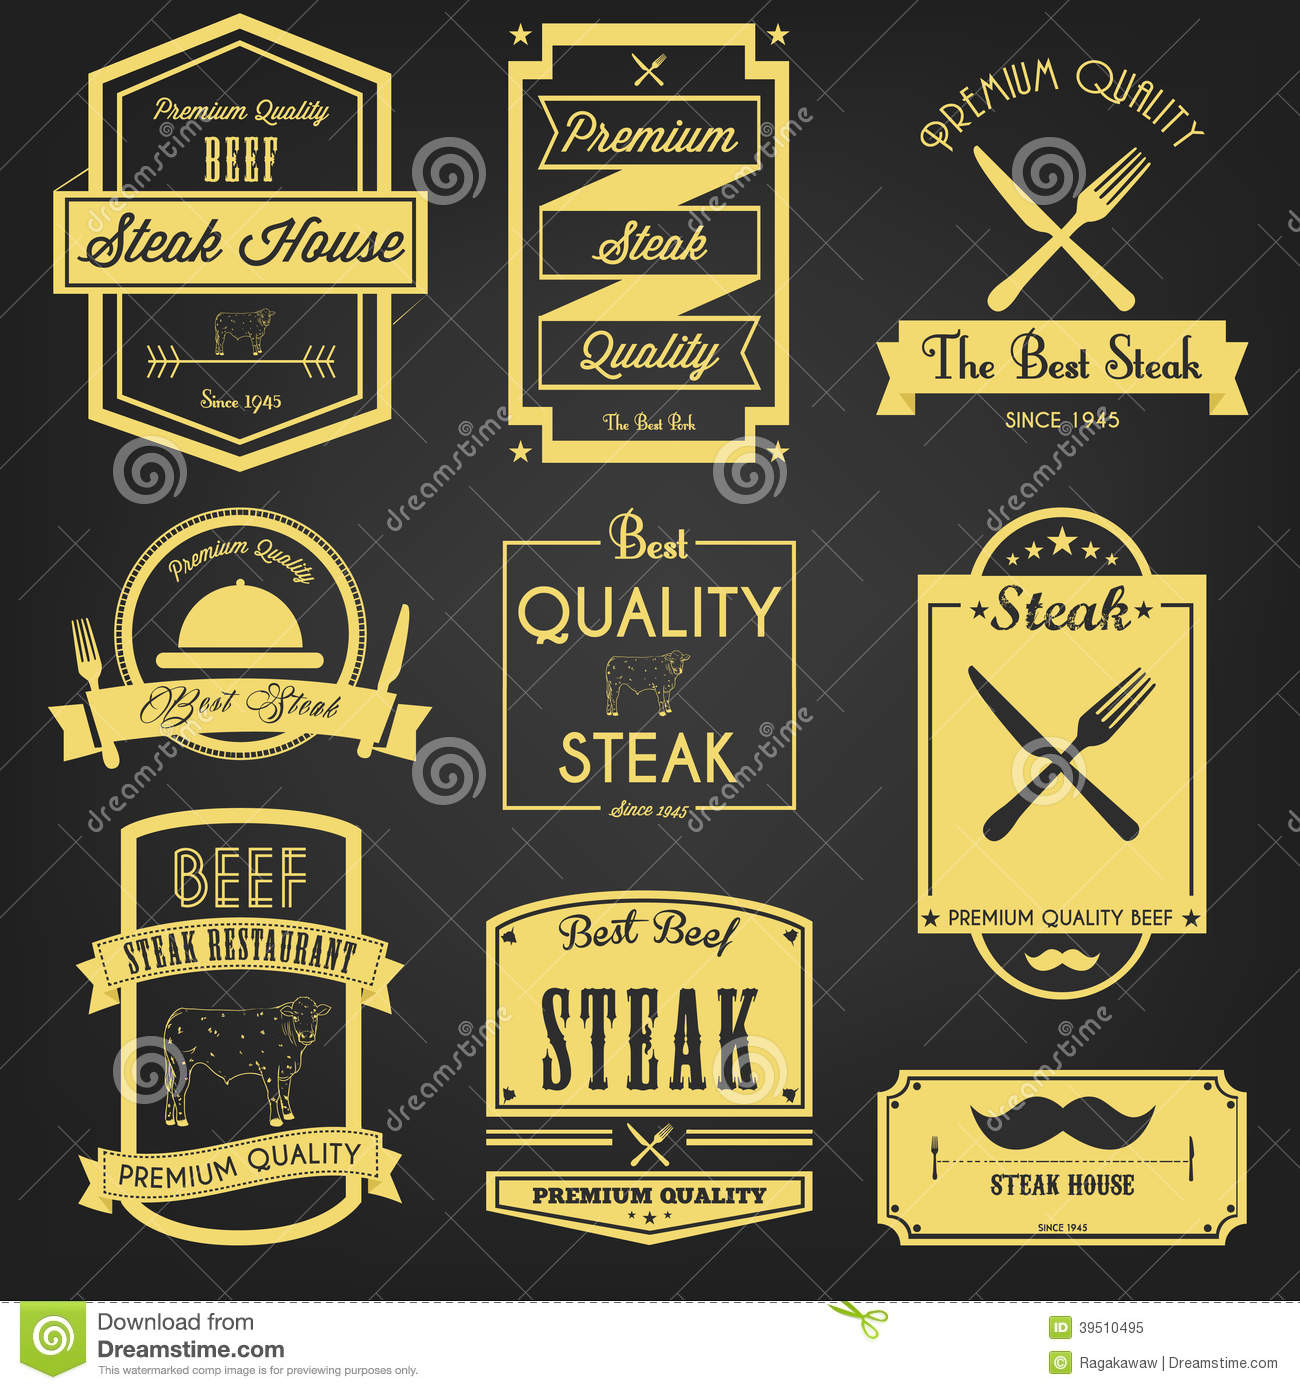 Premium Steak Vintage Label